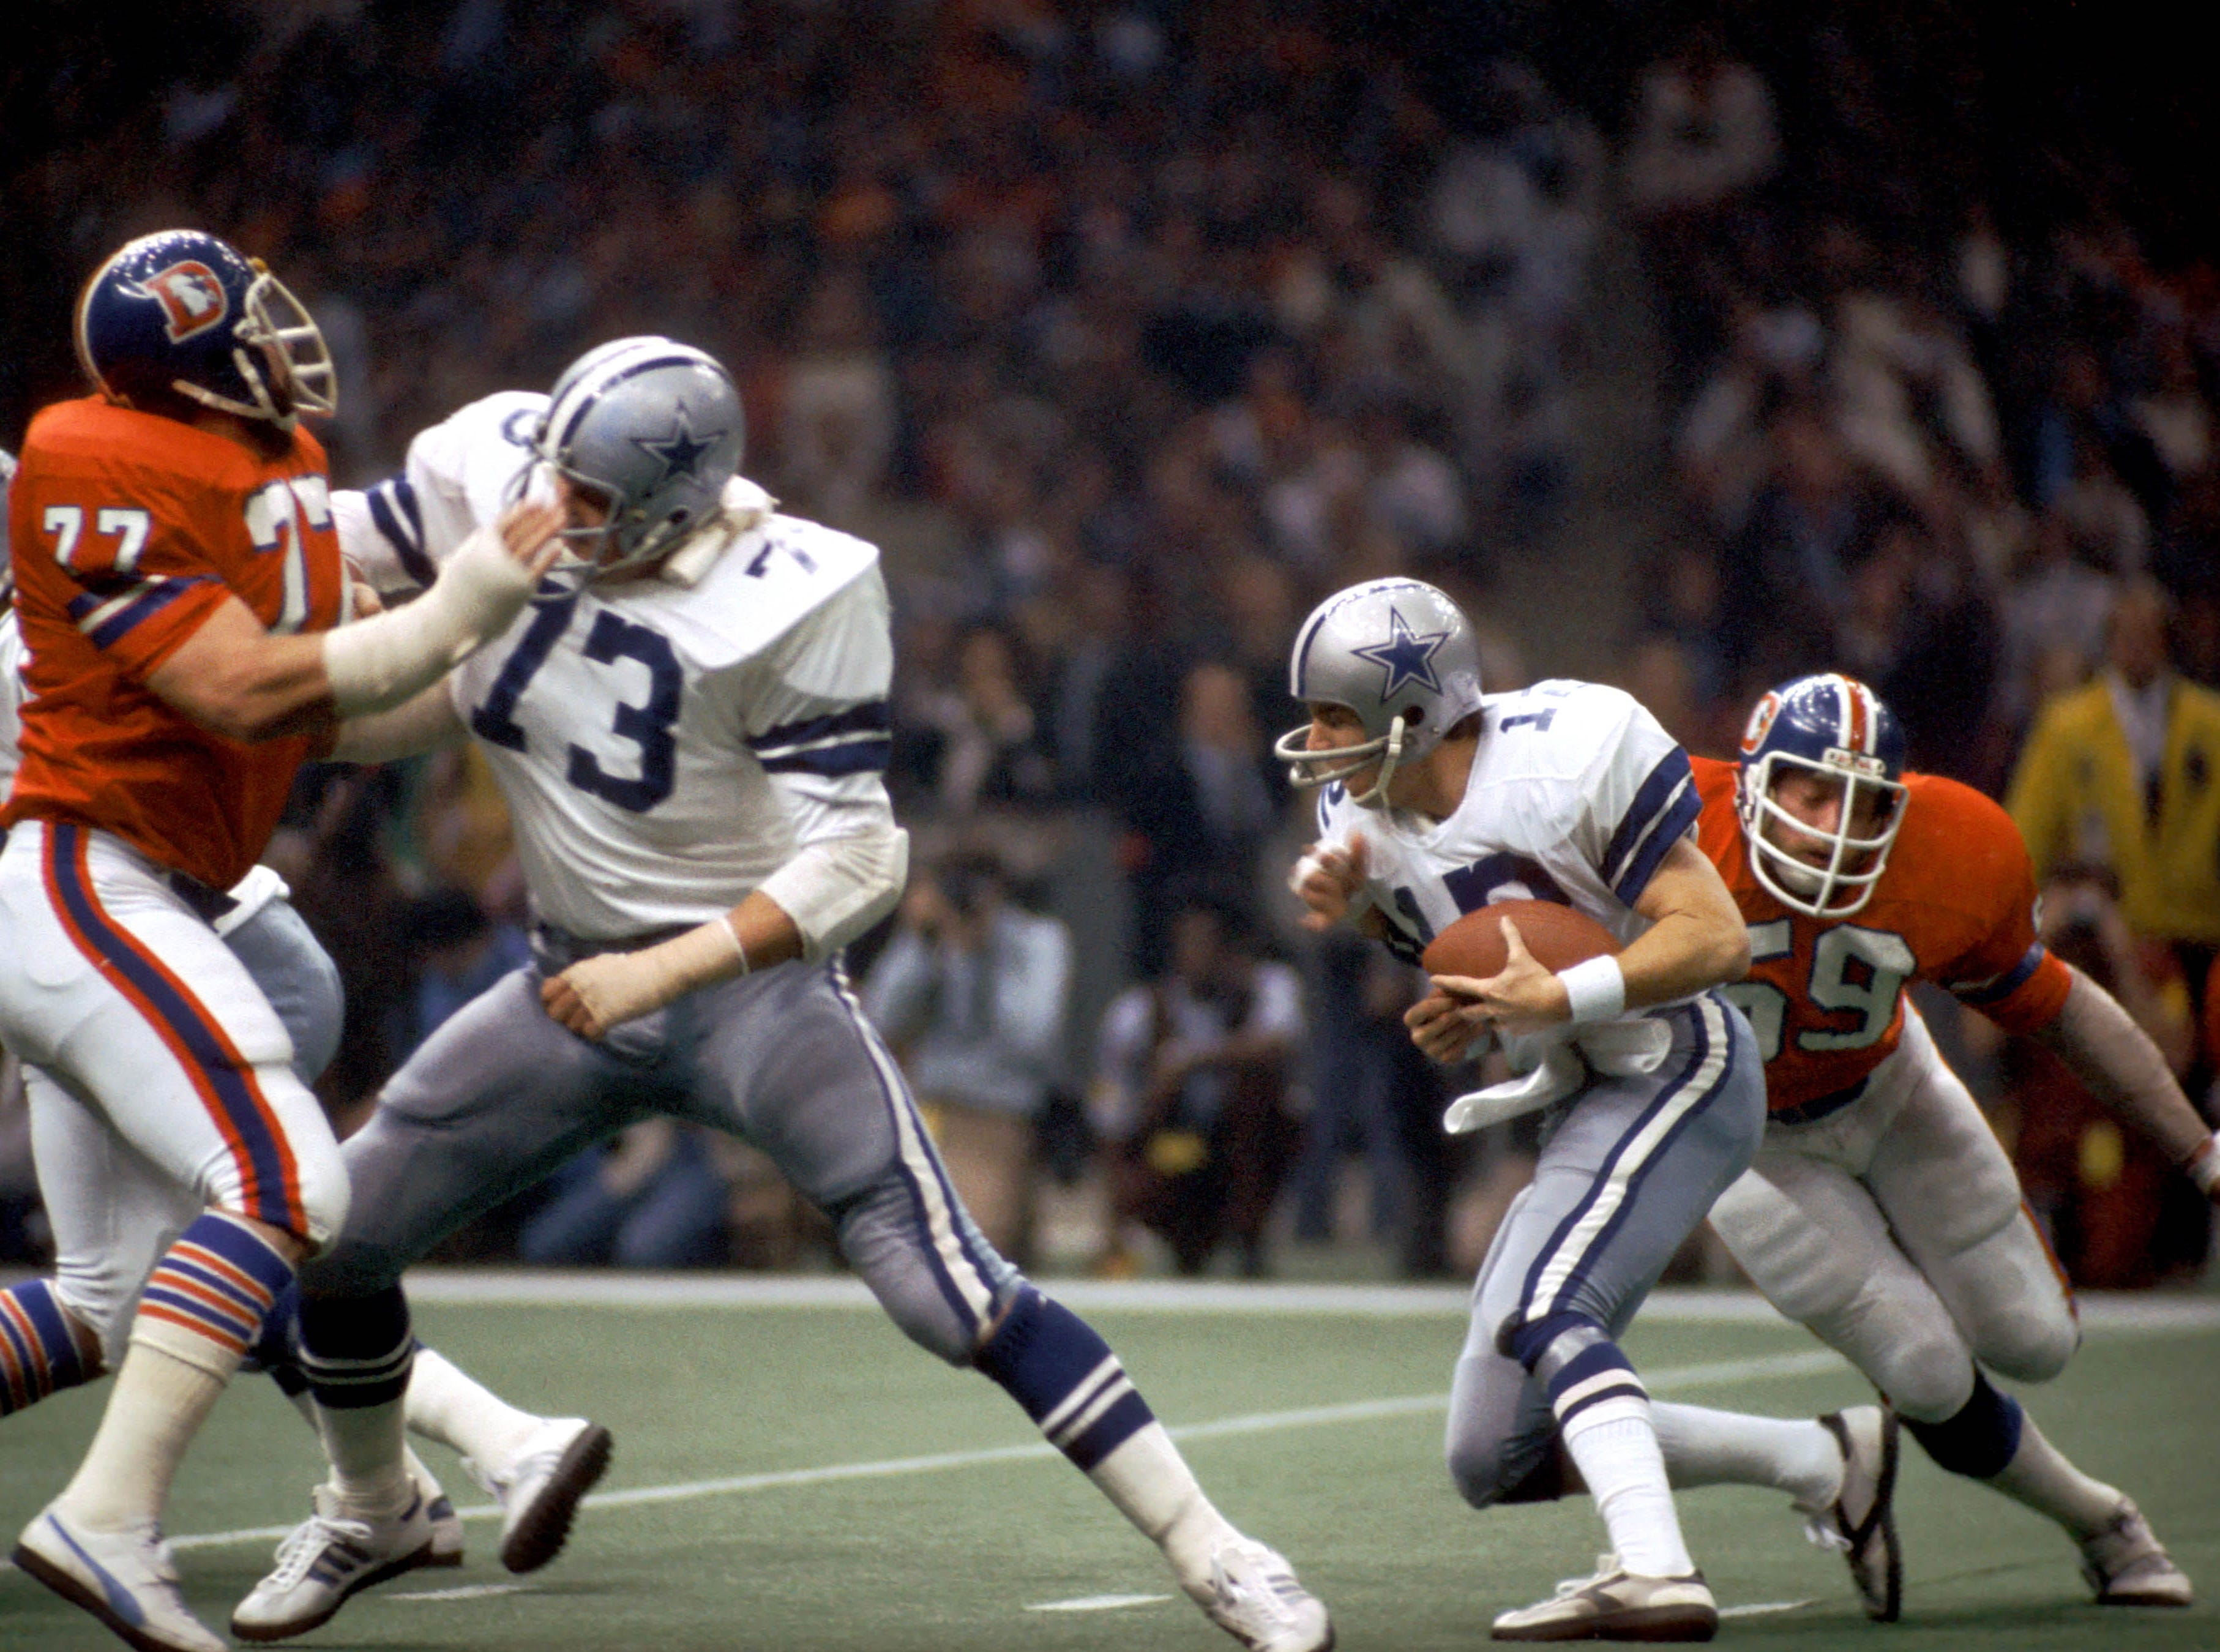 The Dallas Cowboys were another powerhouse in the 70s. They finished the decade with 105 regular season wins, the most for any team, and won two out of five Super Bowl appearances (VI and XII). (pictured: Jan 15, 1978; New Orleans, USA; Denver Broncos linebacker (59) Joe Rizzo sacks Dallas Cowboys quarterback (12) Roger Staubach during Super Bowl XII at the Superdome. The Cowboys defeated the Broncos 27-10.)